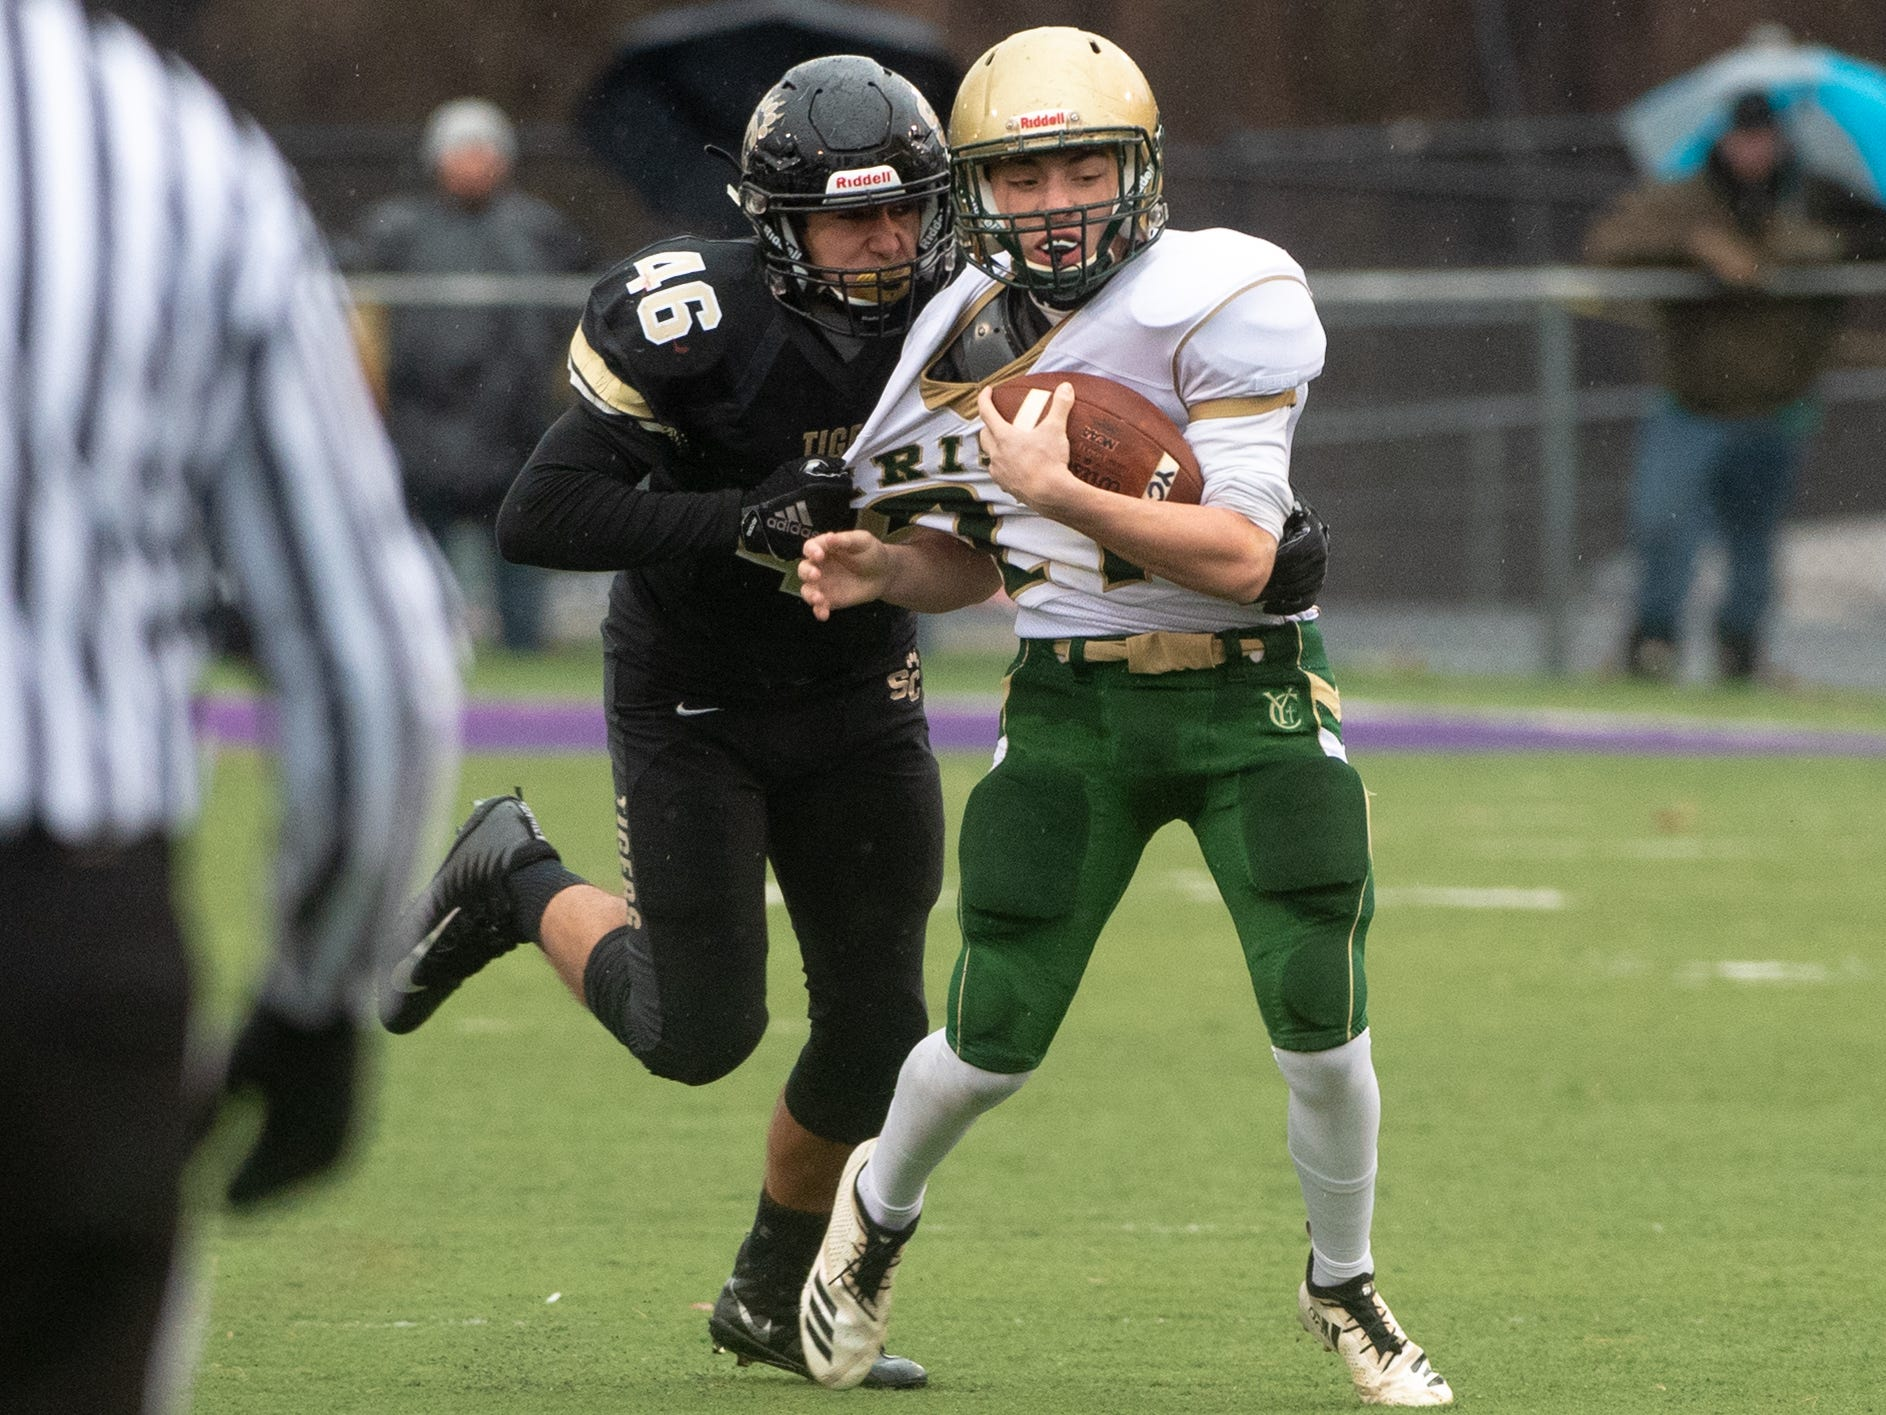 Wade Kerstetter (46) of Southern Columbia tries to stop the run during the state quarter-finals game between York Catholic and Southern Columbia at Shamokin Area High School, November 24, 2018. The Tigers defeated the Irish 56-23.